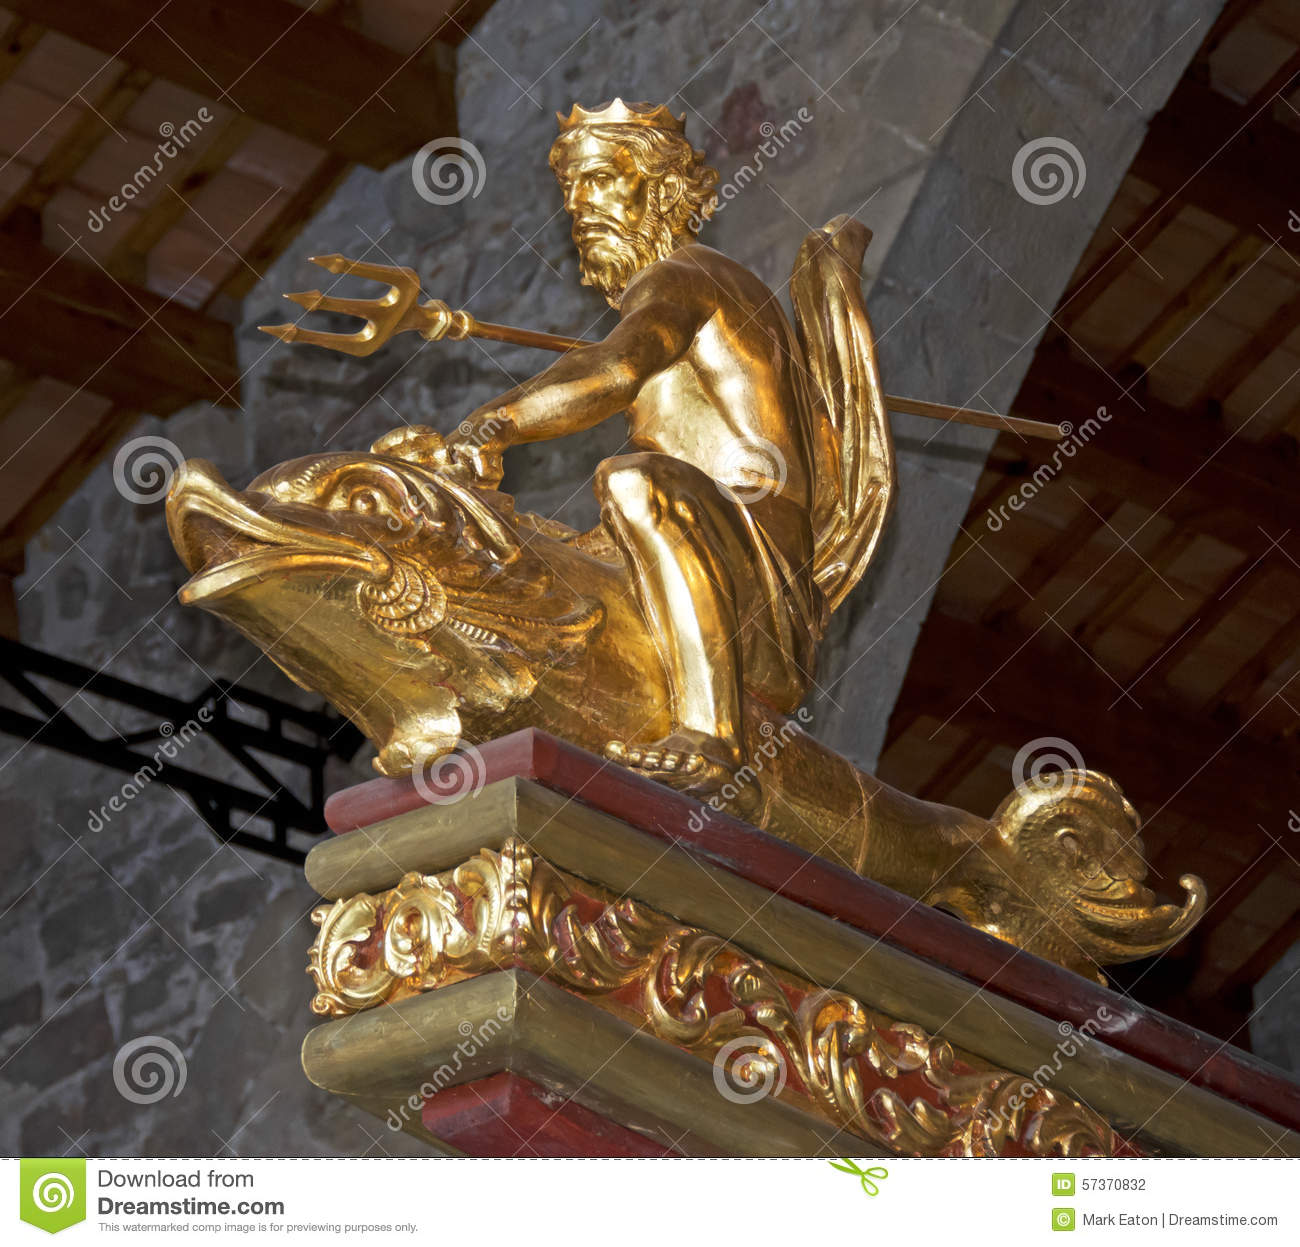 Neptune God Of The Sea Stock Photo Image Of Gild Cruise 57370832